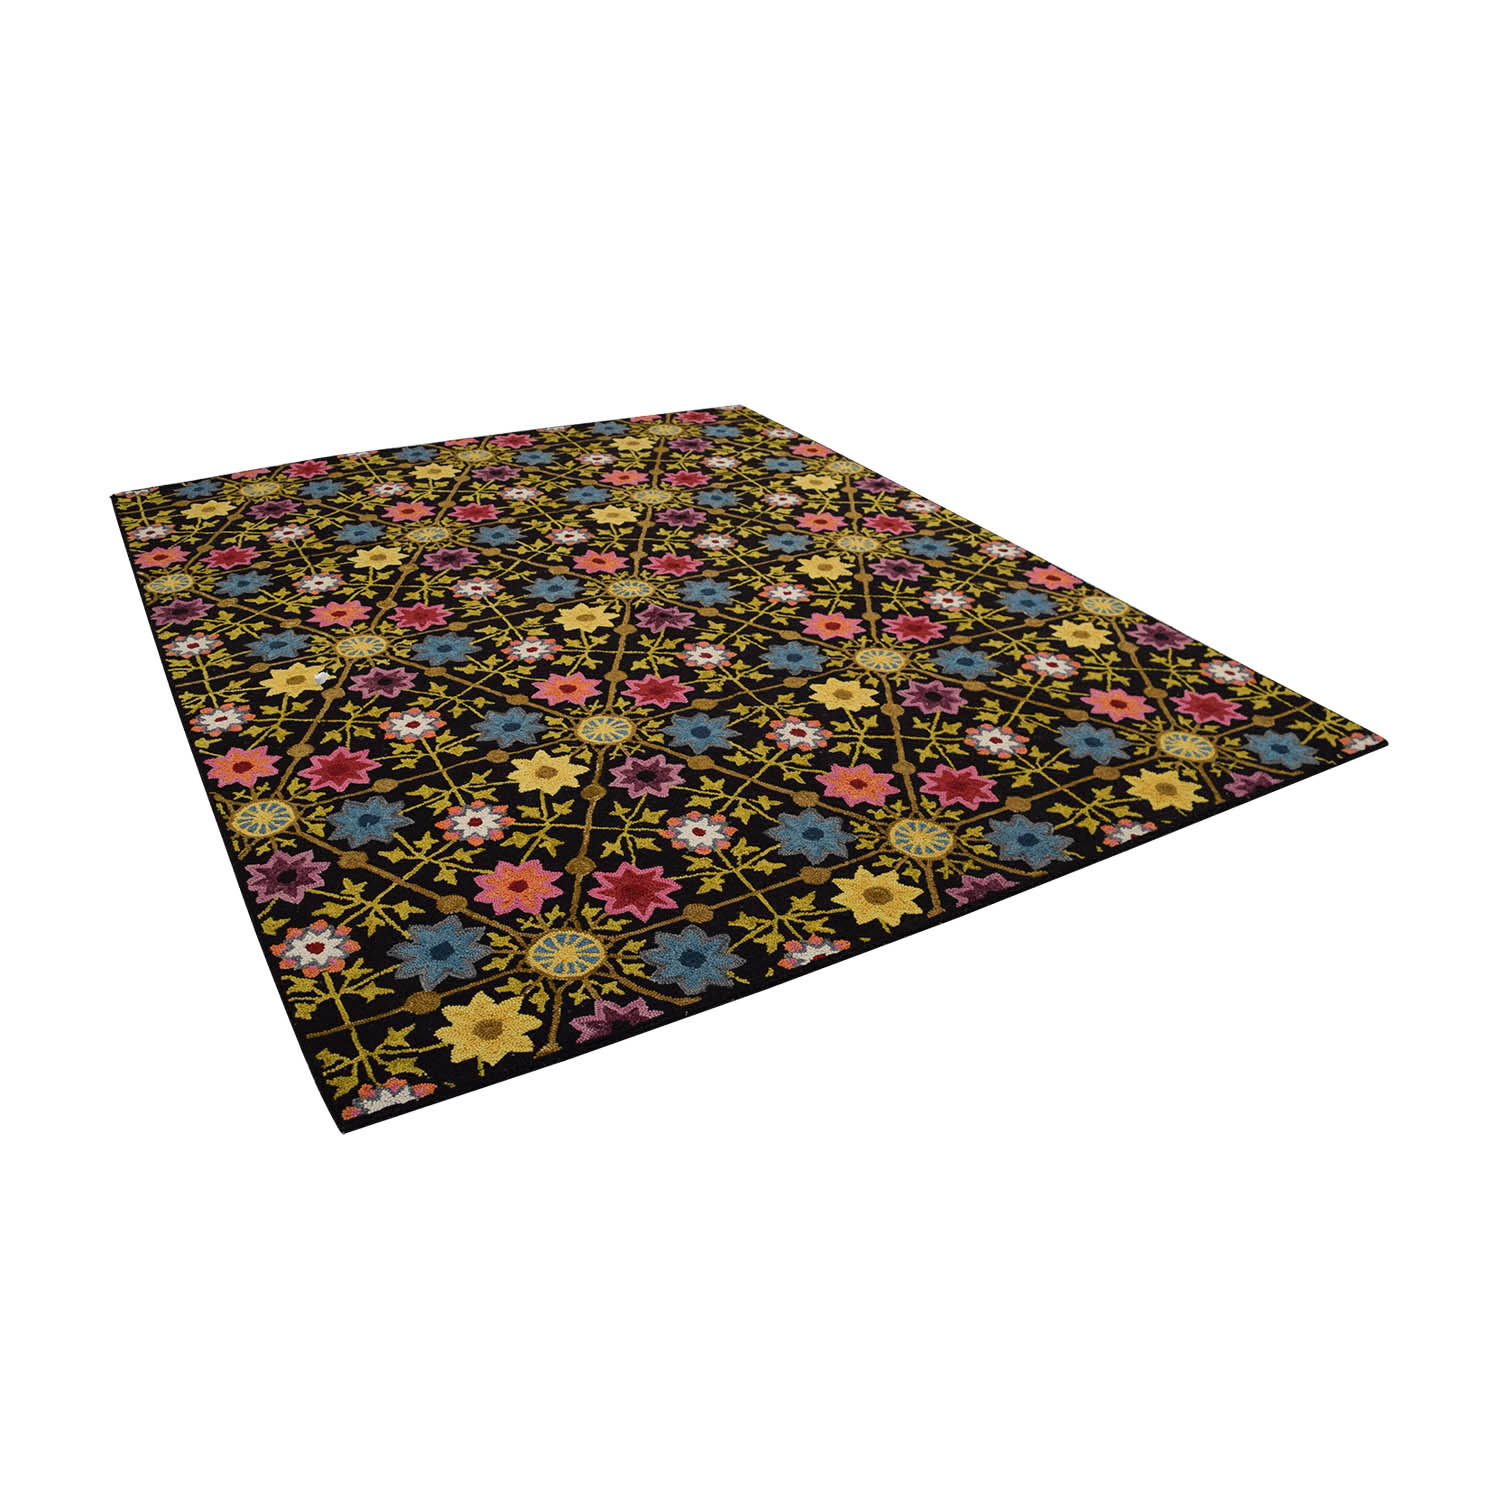 Obeetee Obeetee Black with Multi-Colored Floral Rug nj